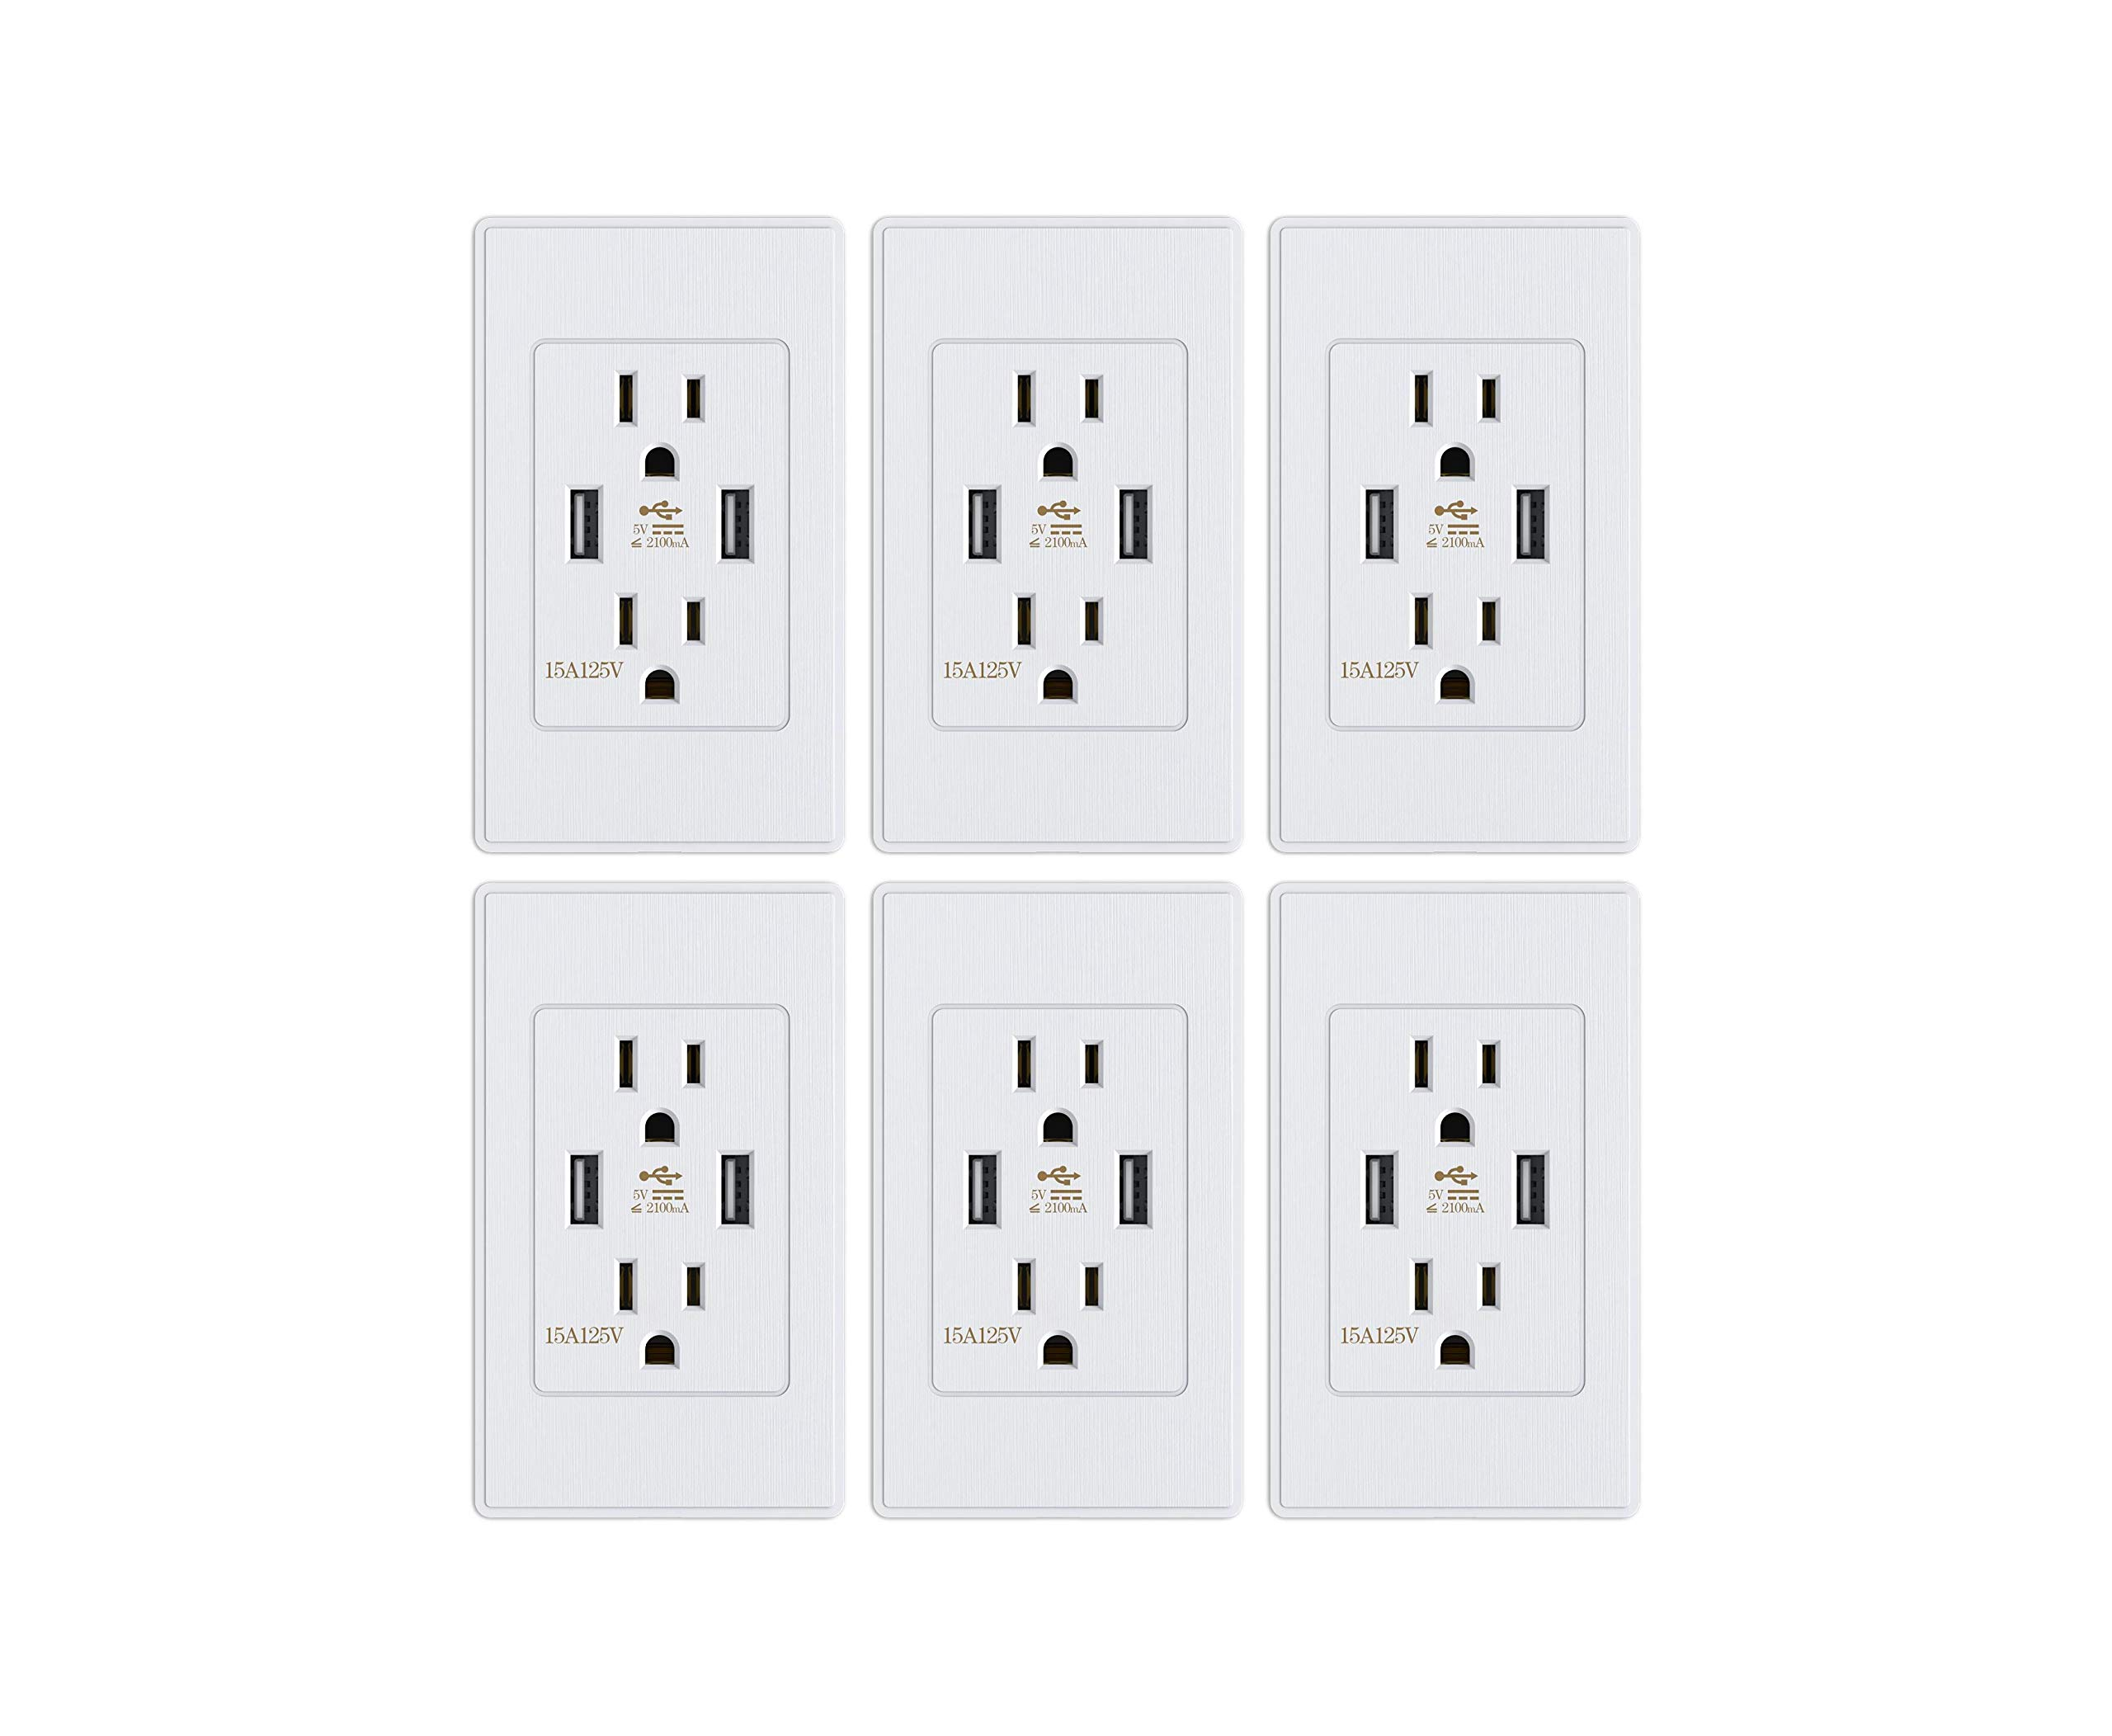 Standard Outlet 2 US Standard Socket with Dual USB Ports Outlet Cover Wall Plates Included Matte Surface (6 Packs)